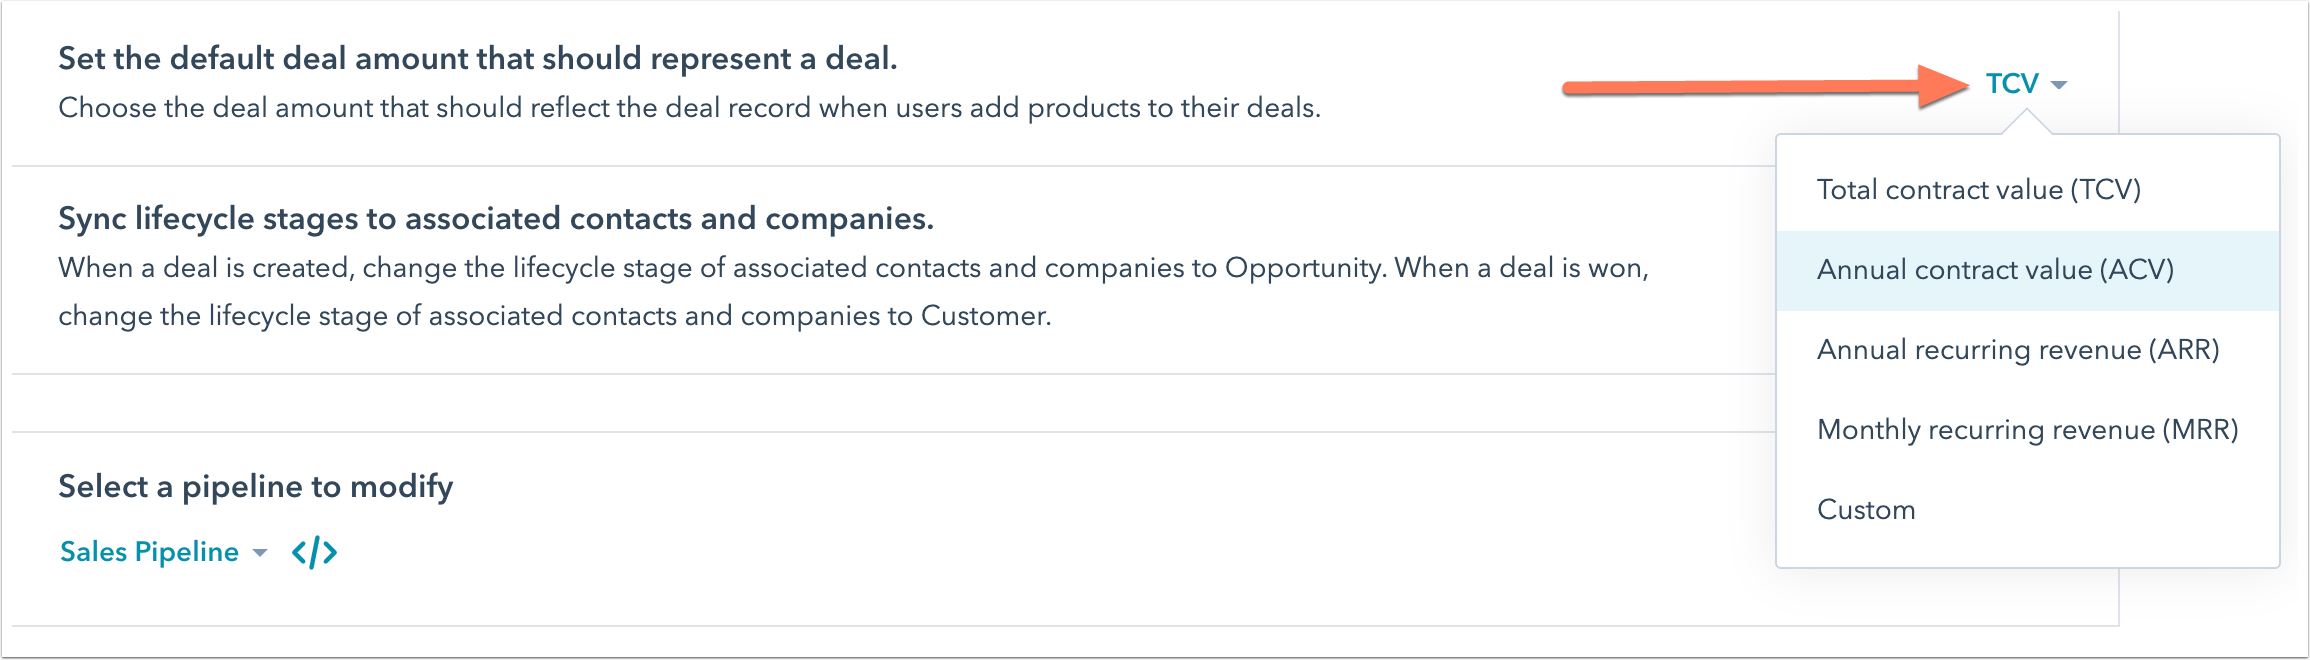 default-deal-amount-in-settings